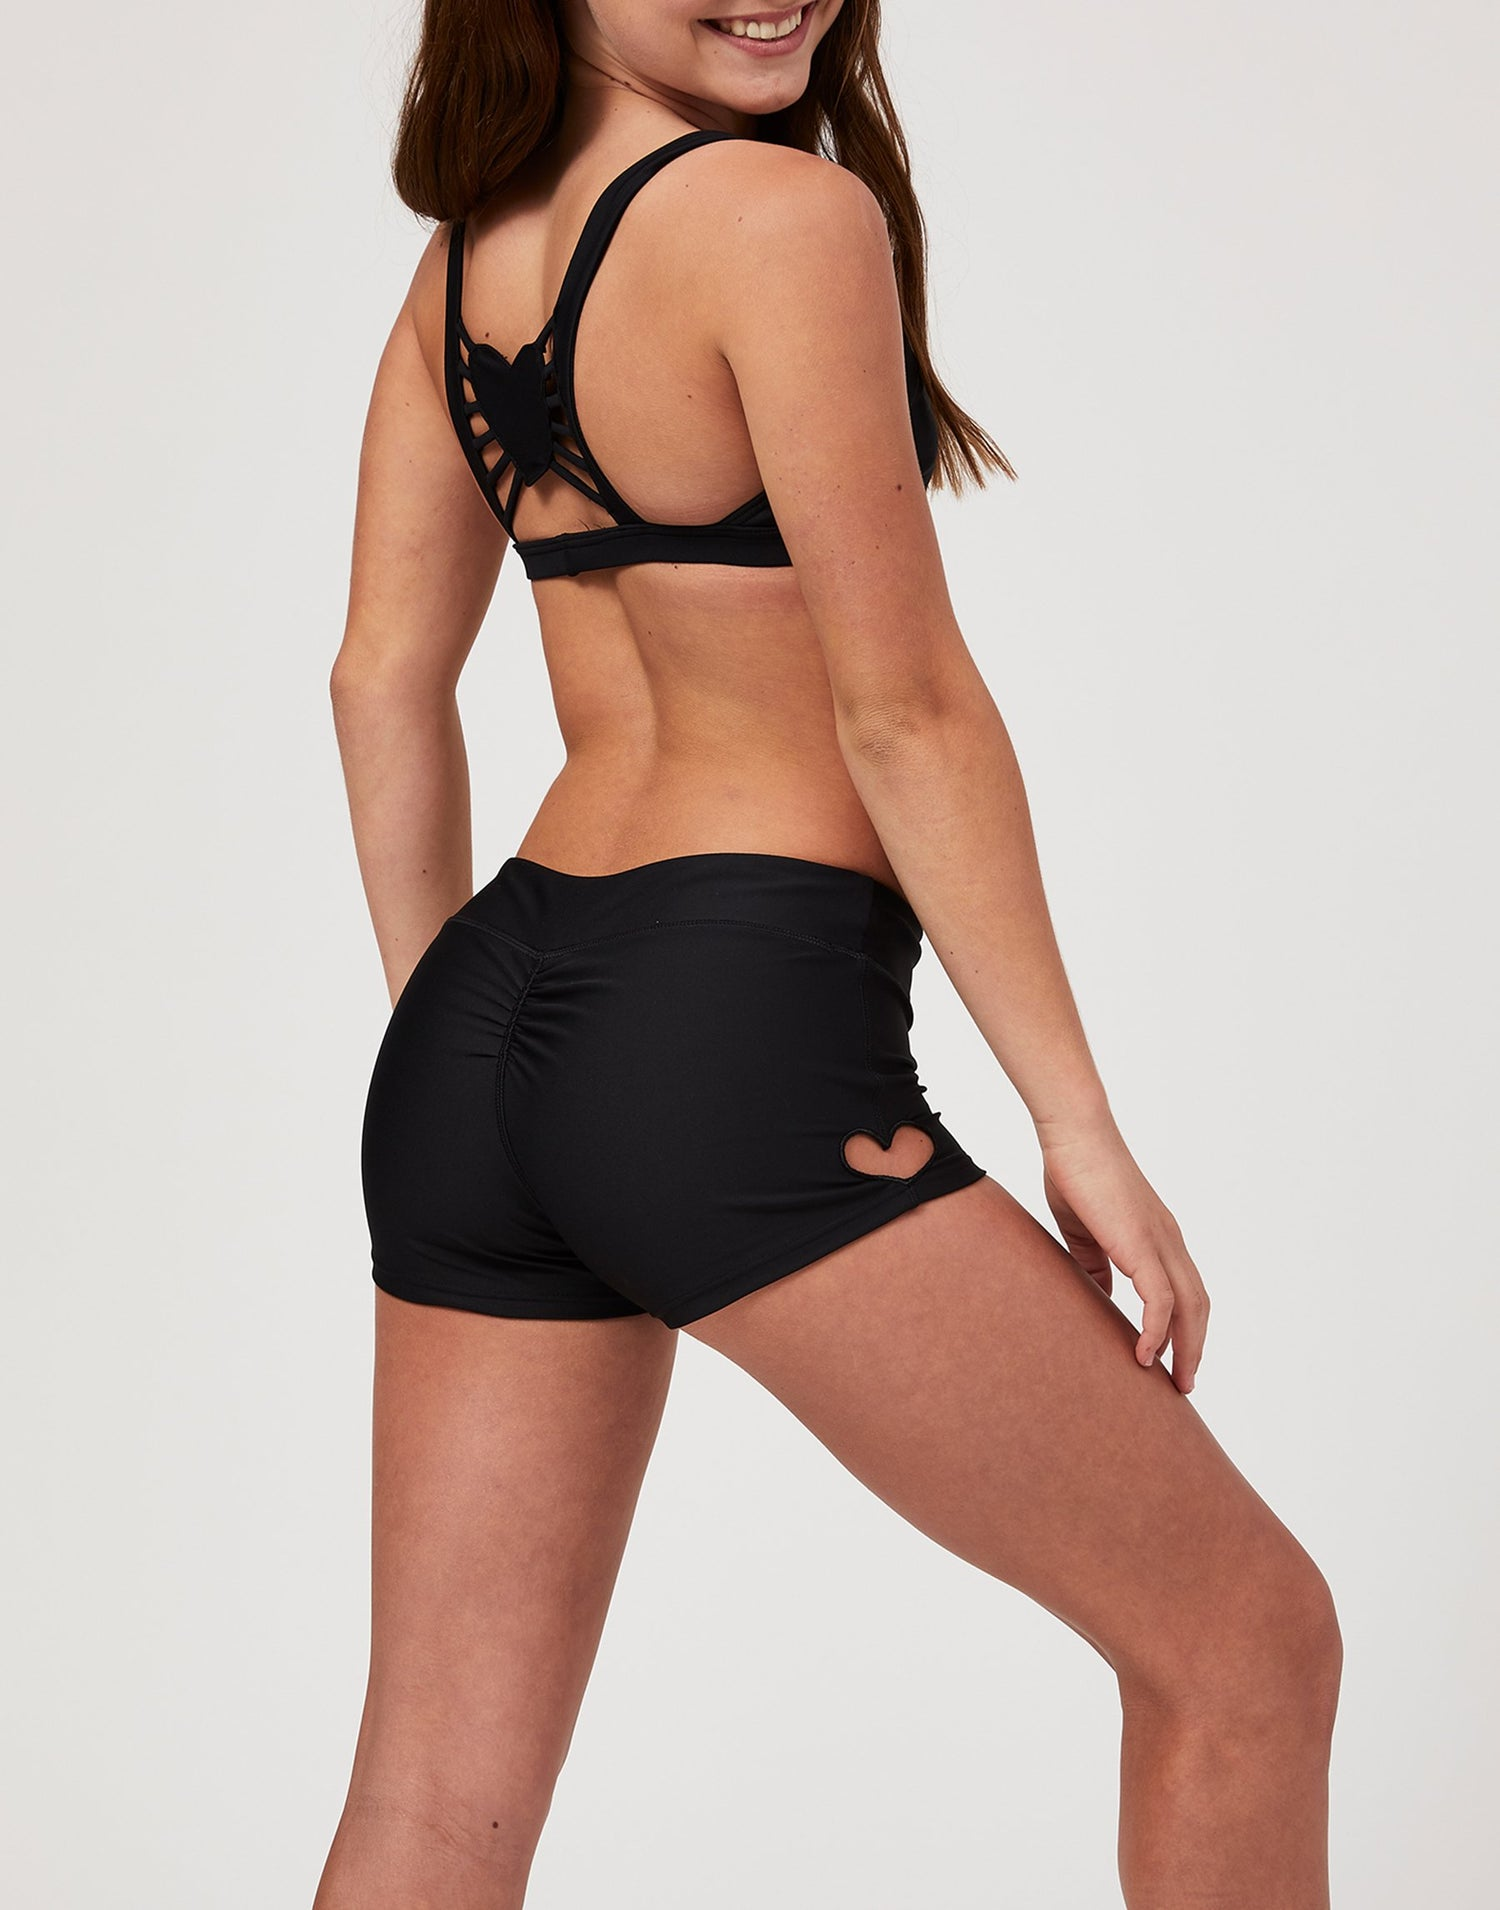 Adult Hartley Short with Heart Cutout in Black - side view